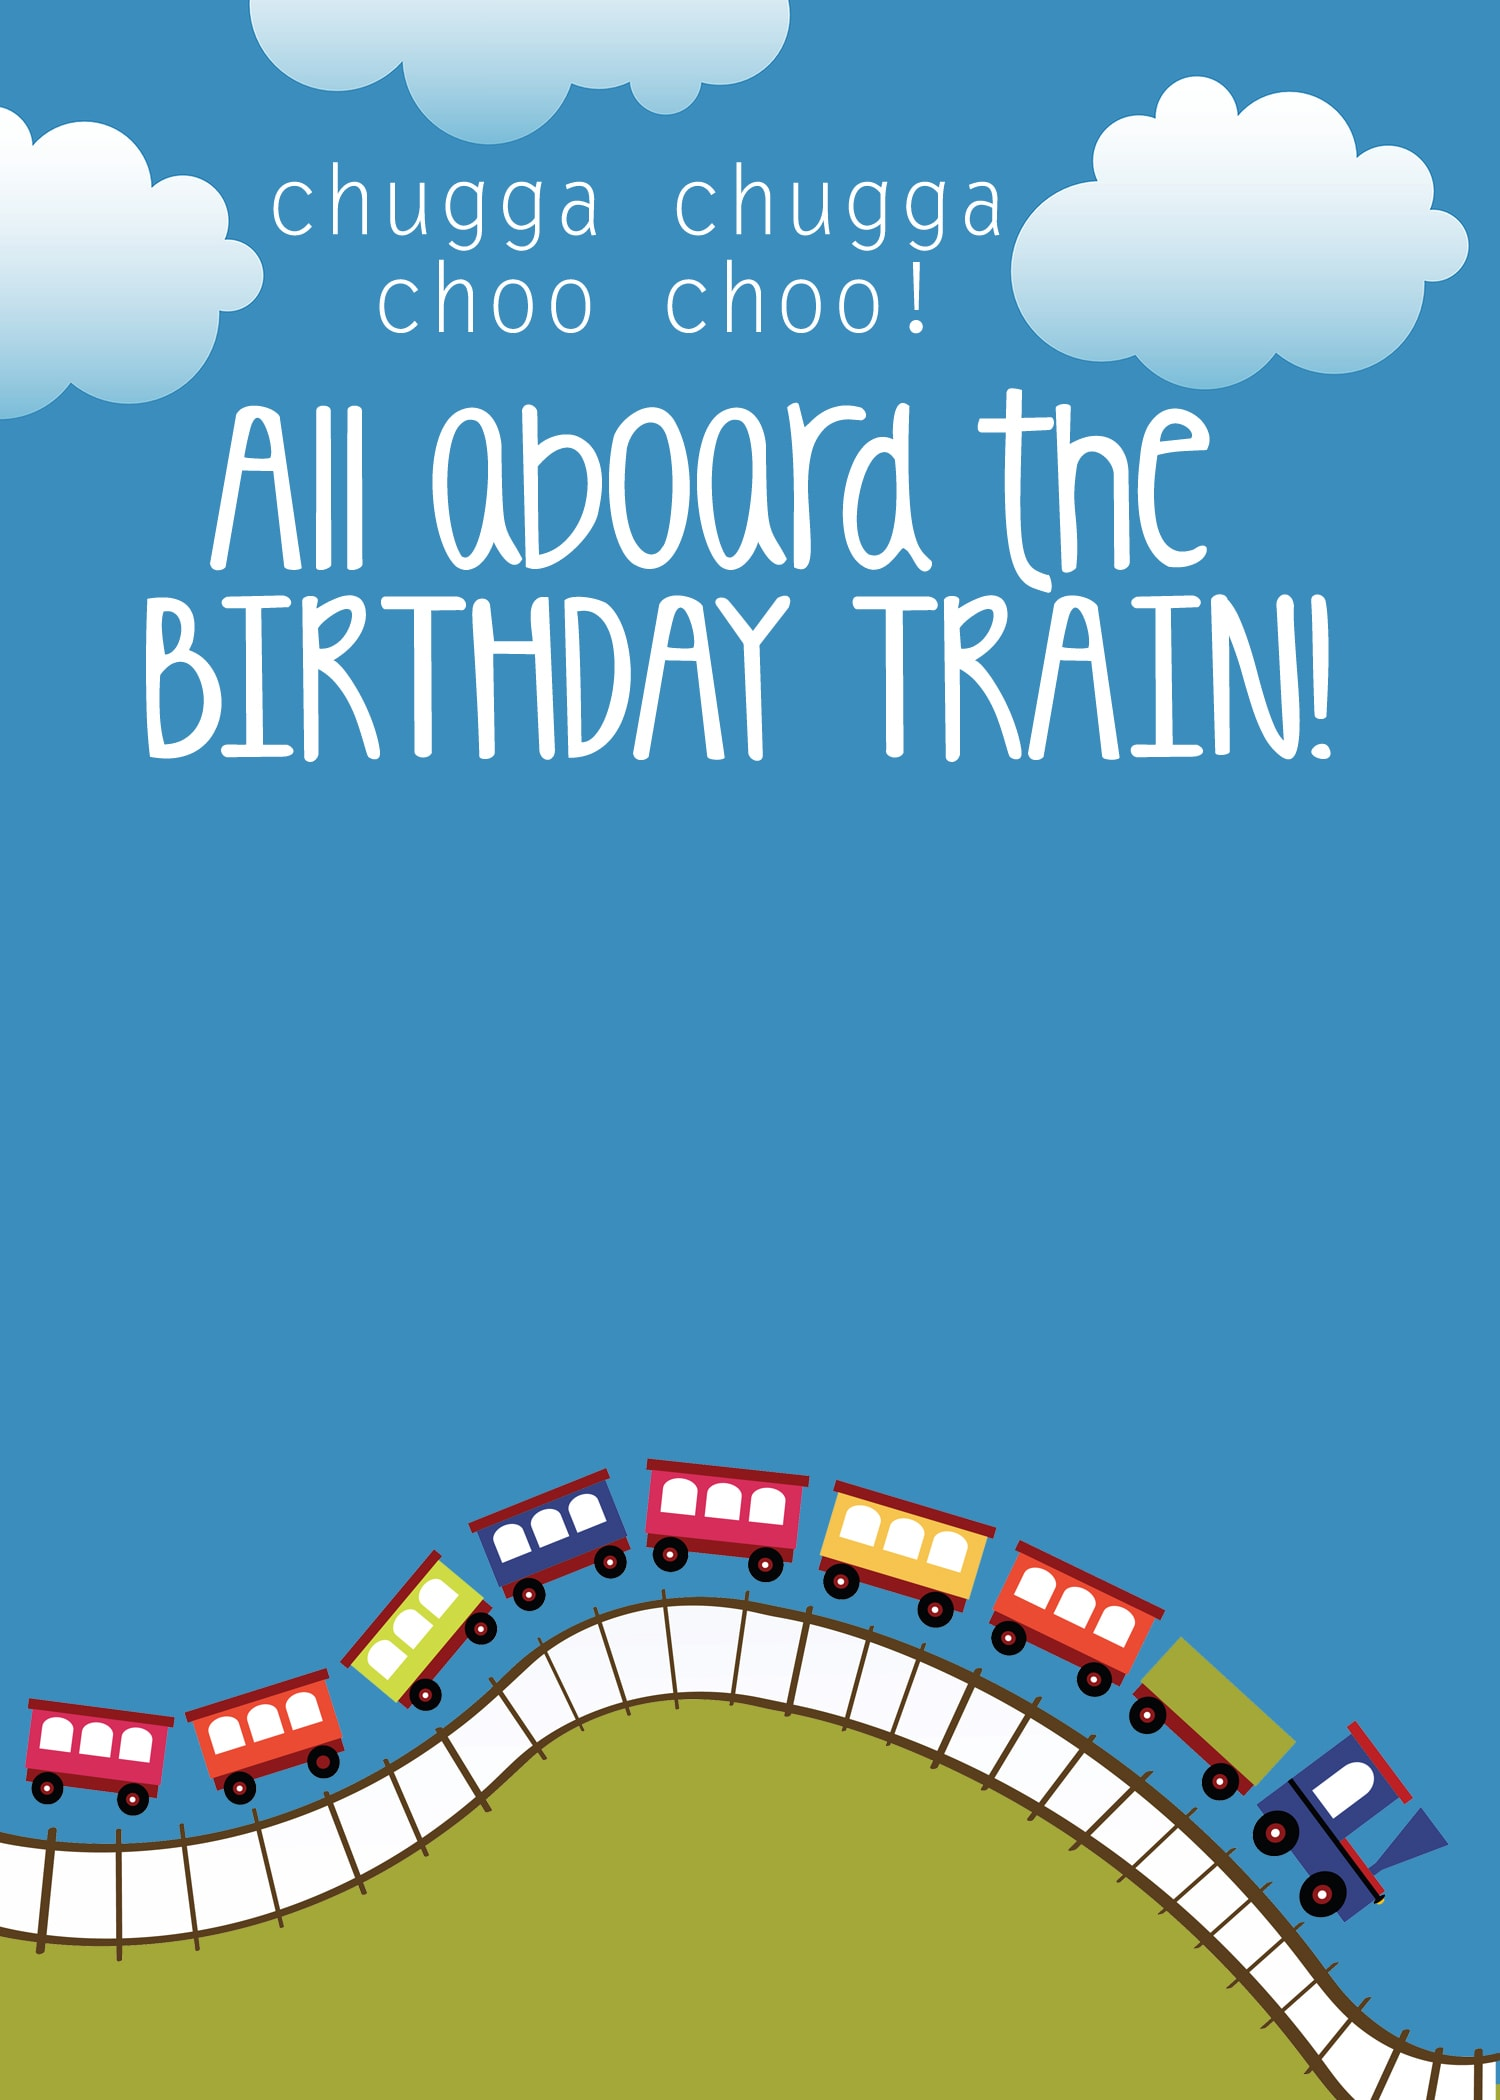 Train themed birthday party with free printables how to nest for less httpshowtonestforlesswp contentuploads201403train birthday party invitation templateg stopboris Choice Image